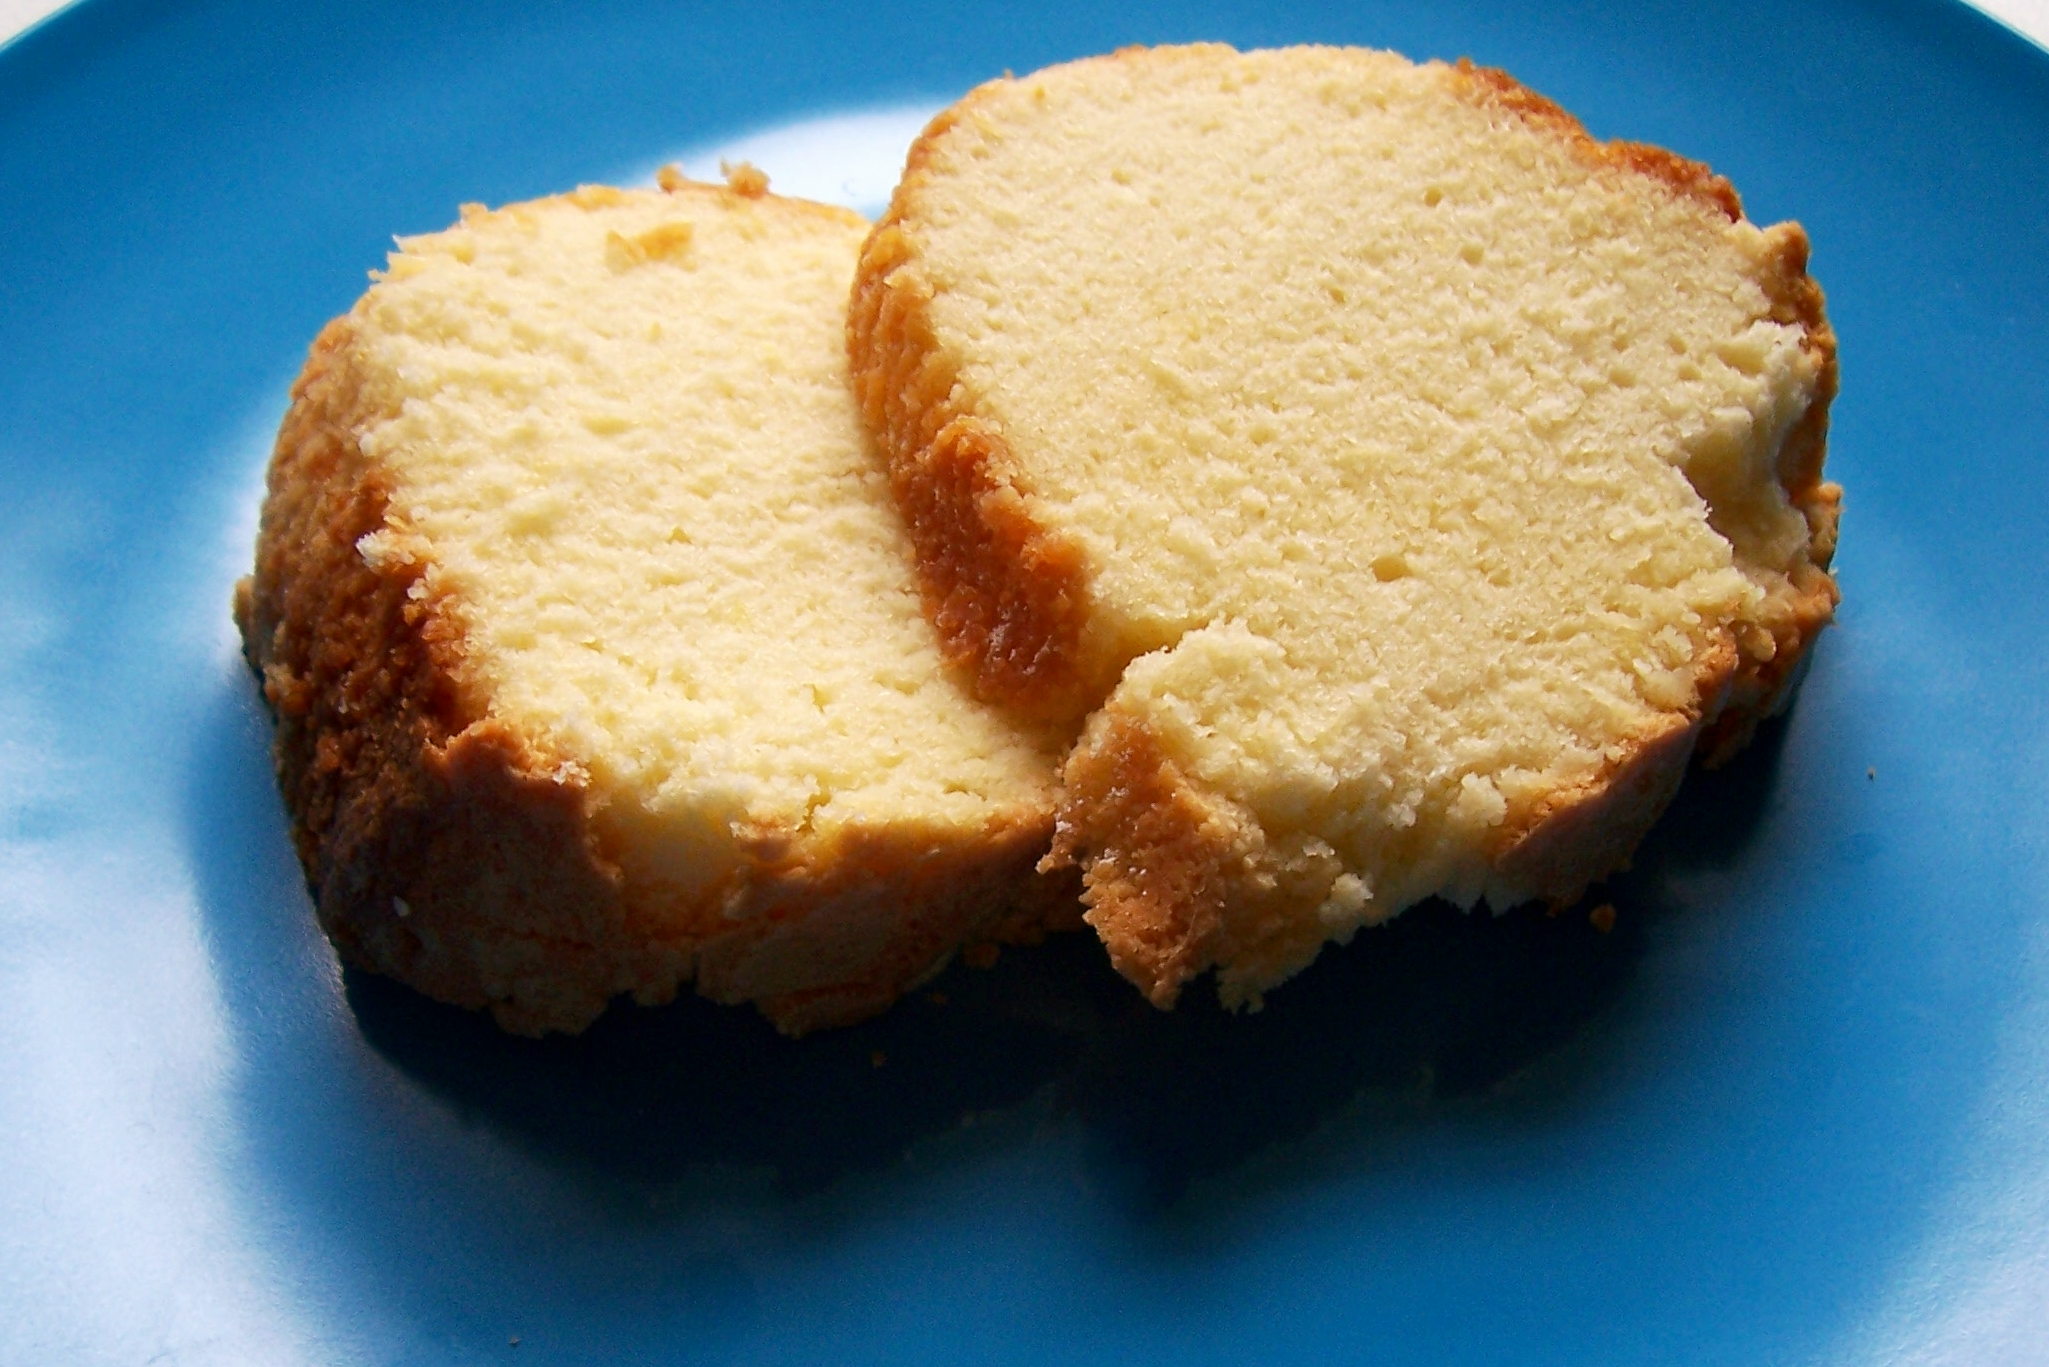 Amanda's Cheese Pound Cake Recipe